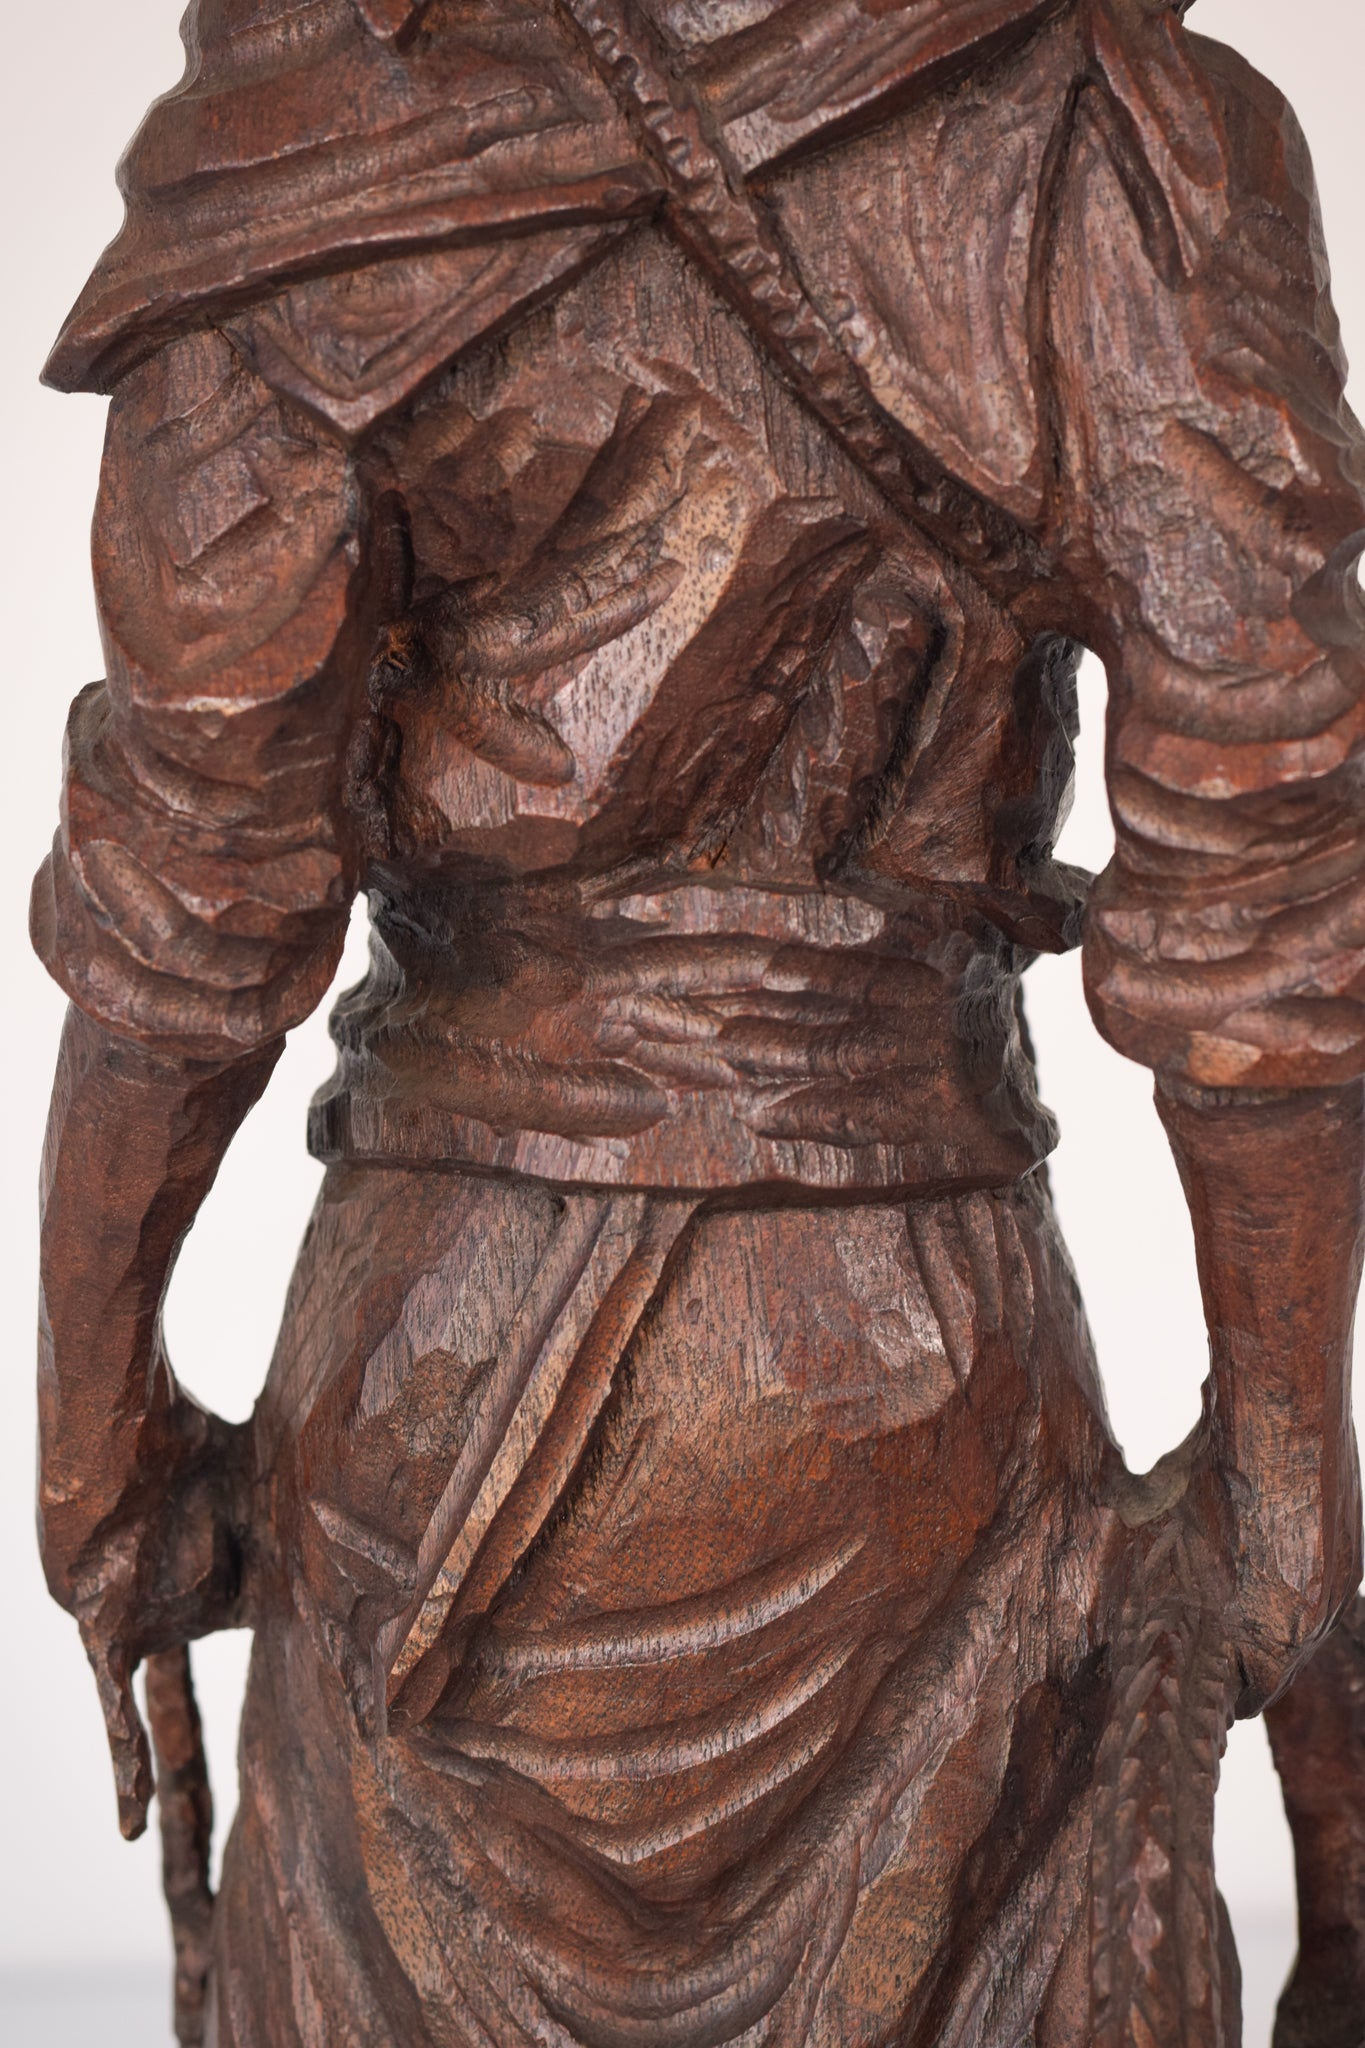 Large High Quality Hand Carved Signed Wooden Sculpture of a Male Figure